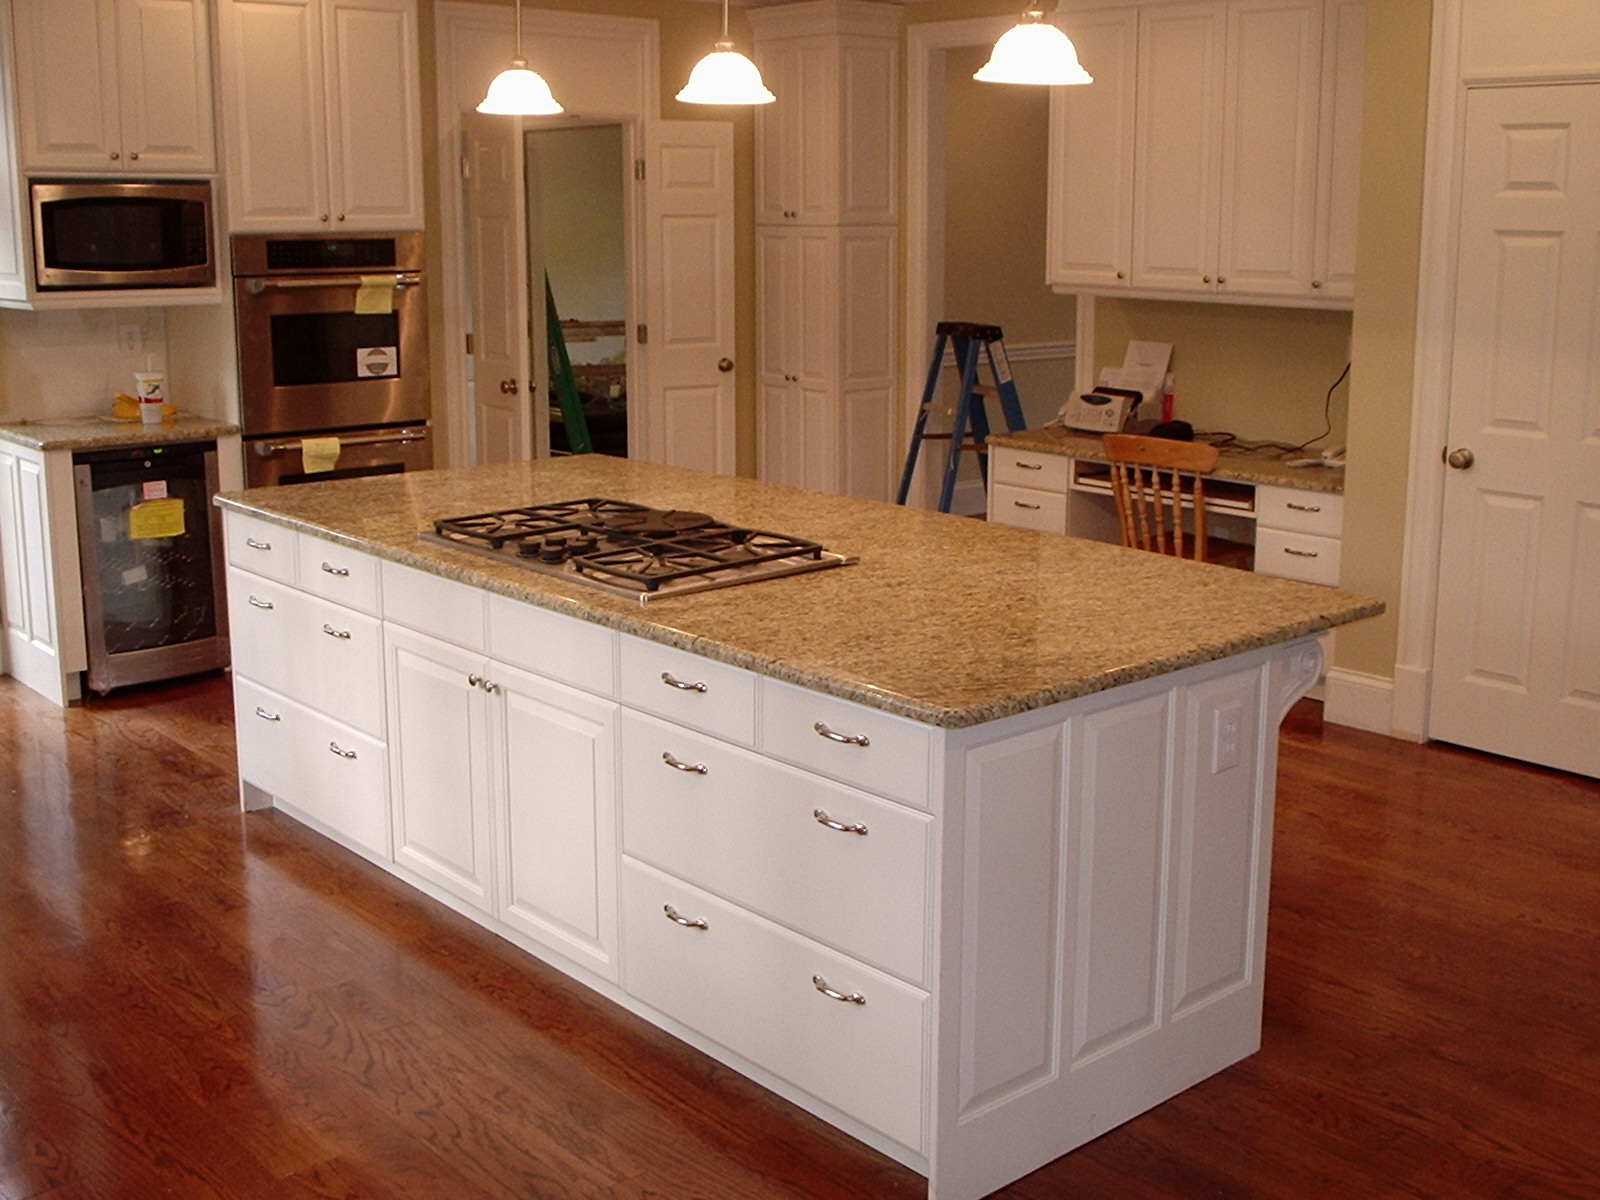 Kitchen cabinet plans dream house experience Cabinets plans